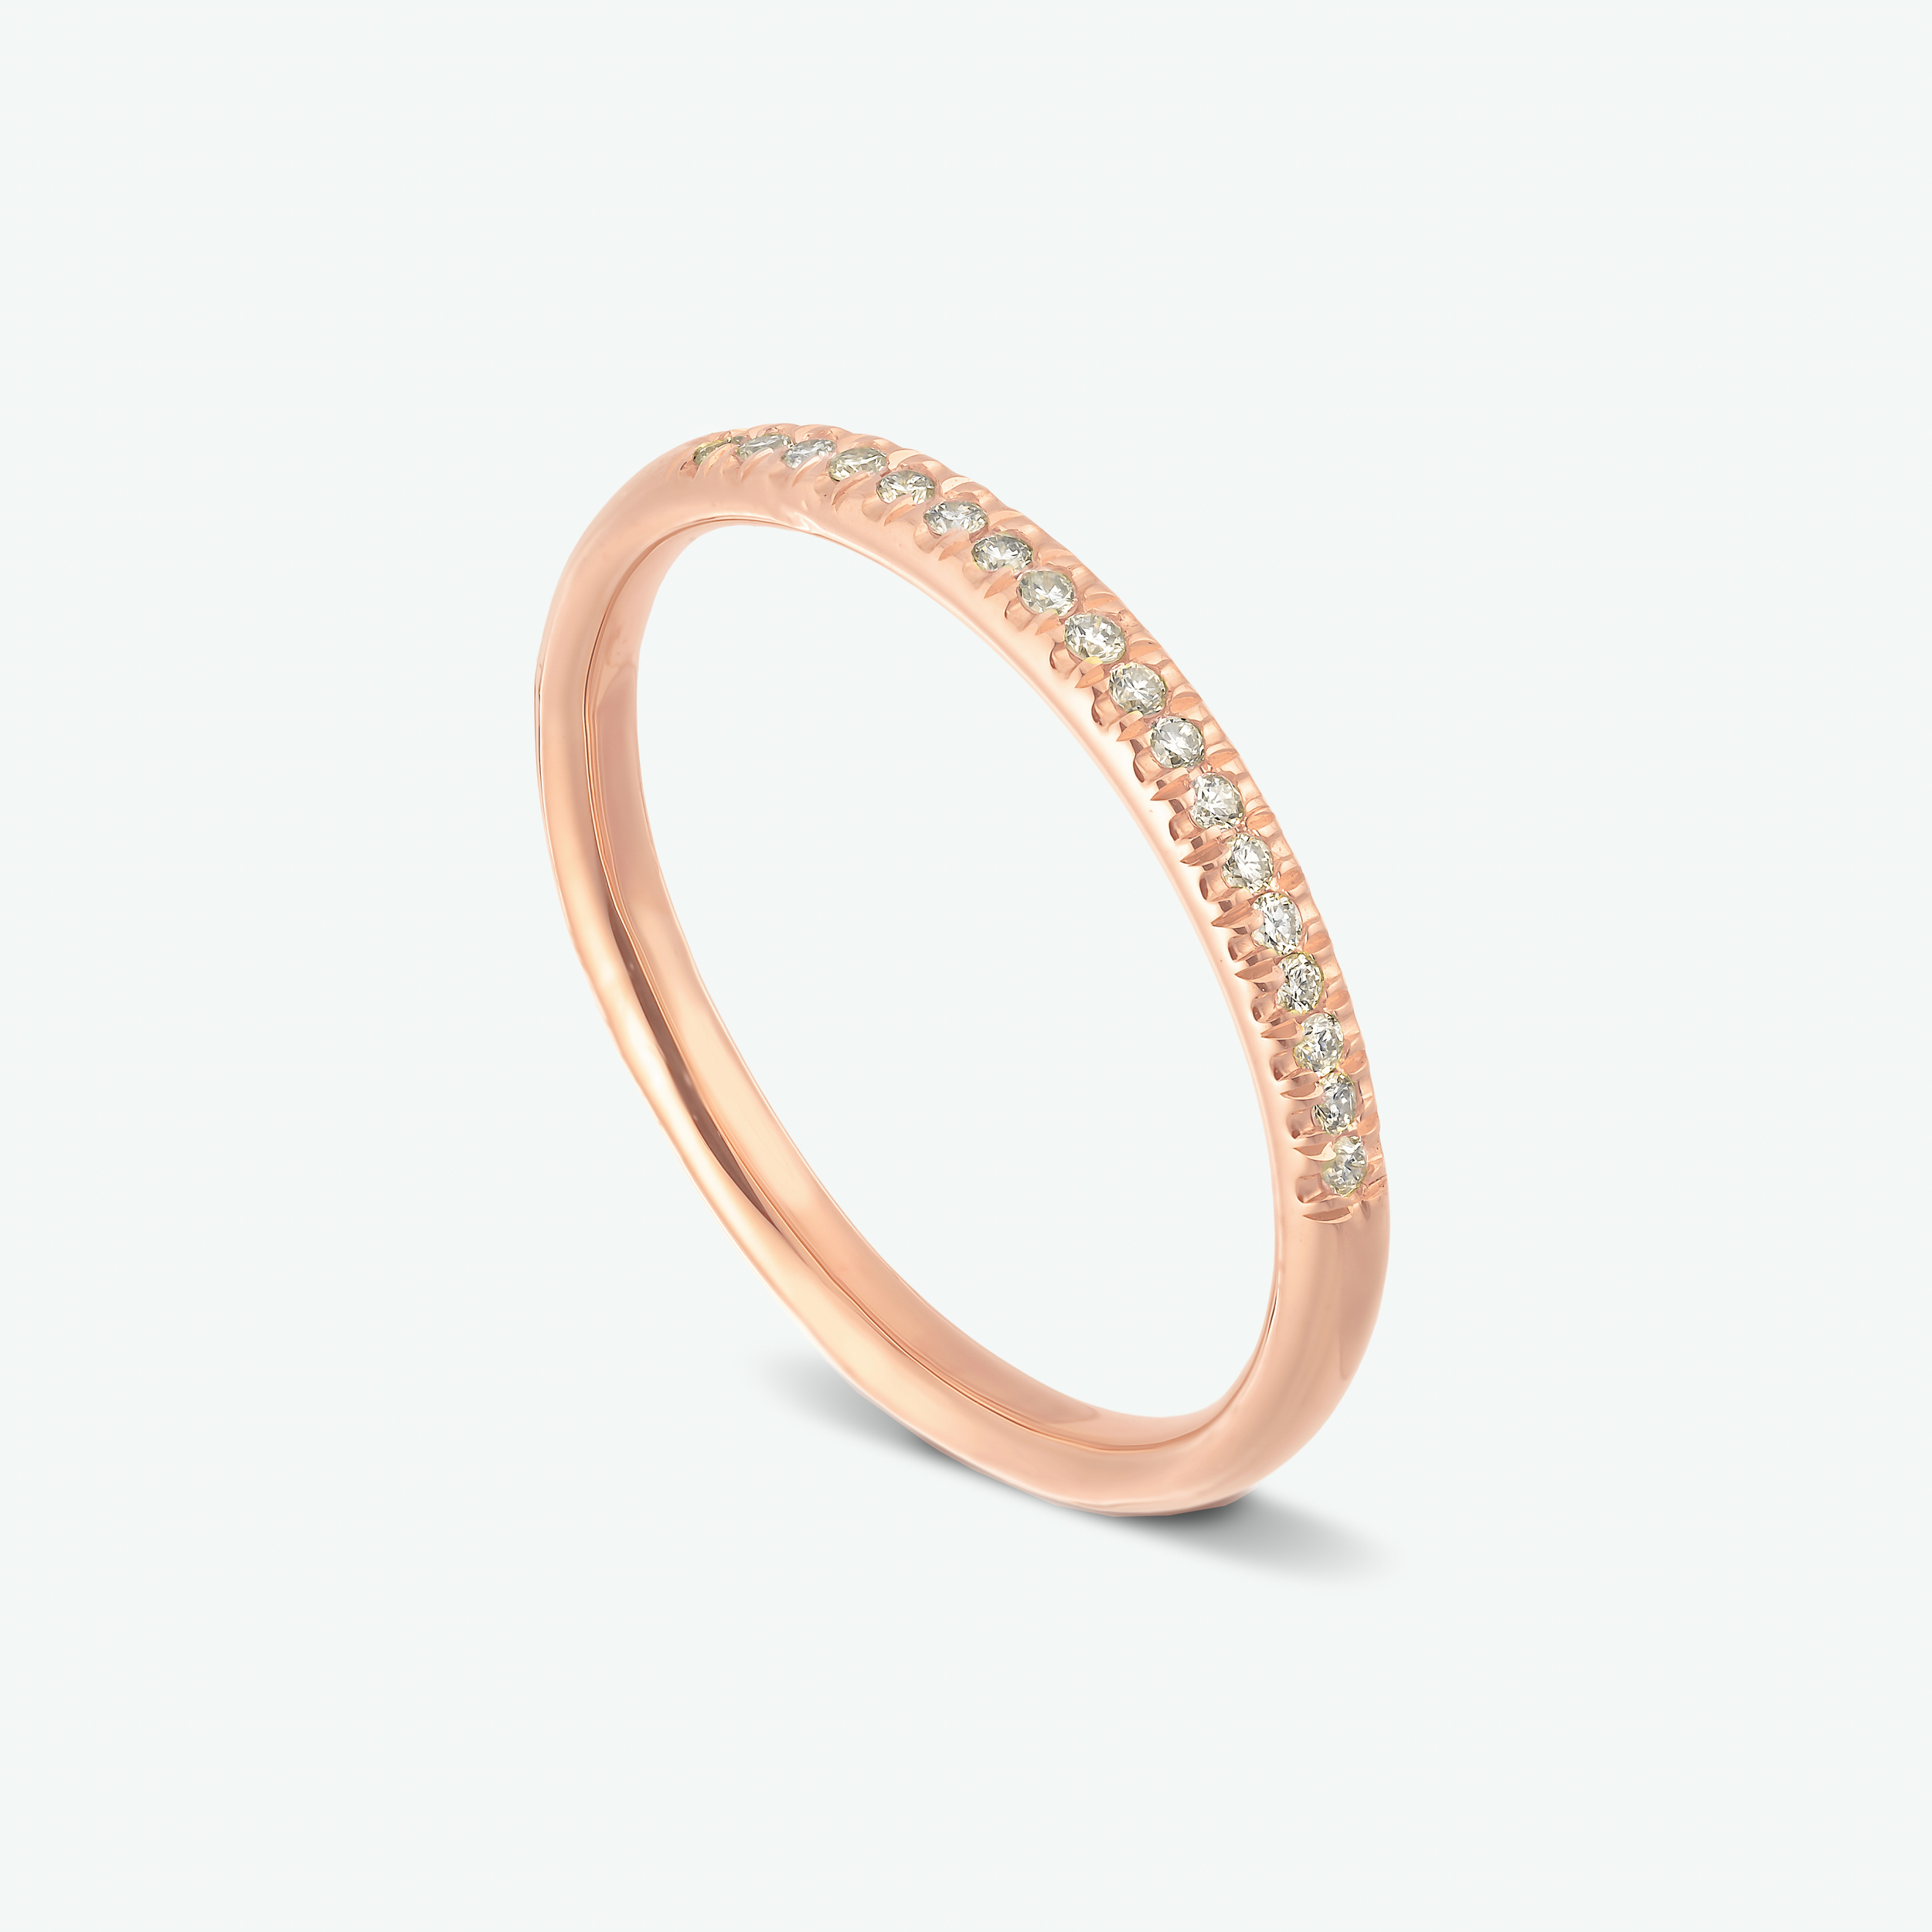 A fine example for a half eternity, pave set, diamond ring. Composed of 14k rose gold that gives this ring it's soft and romantic look.  D: 0.09 ct.